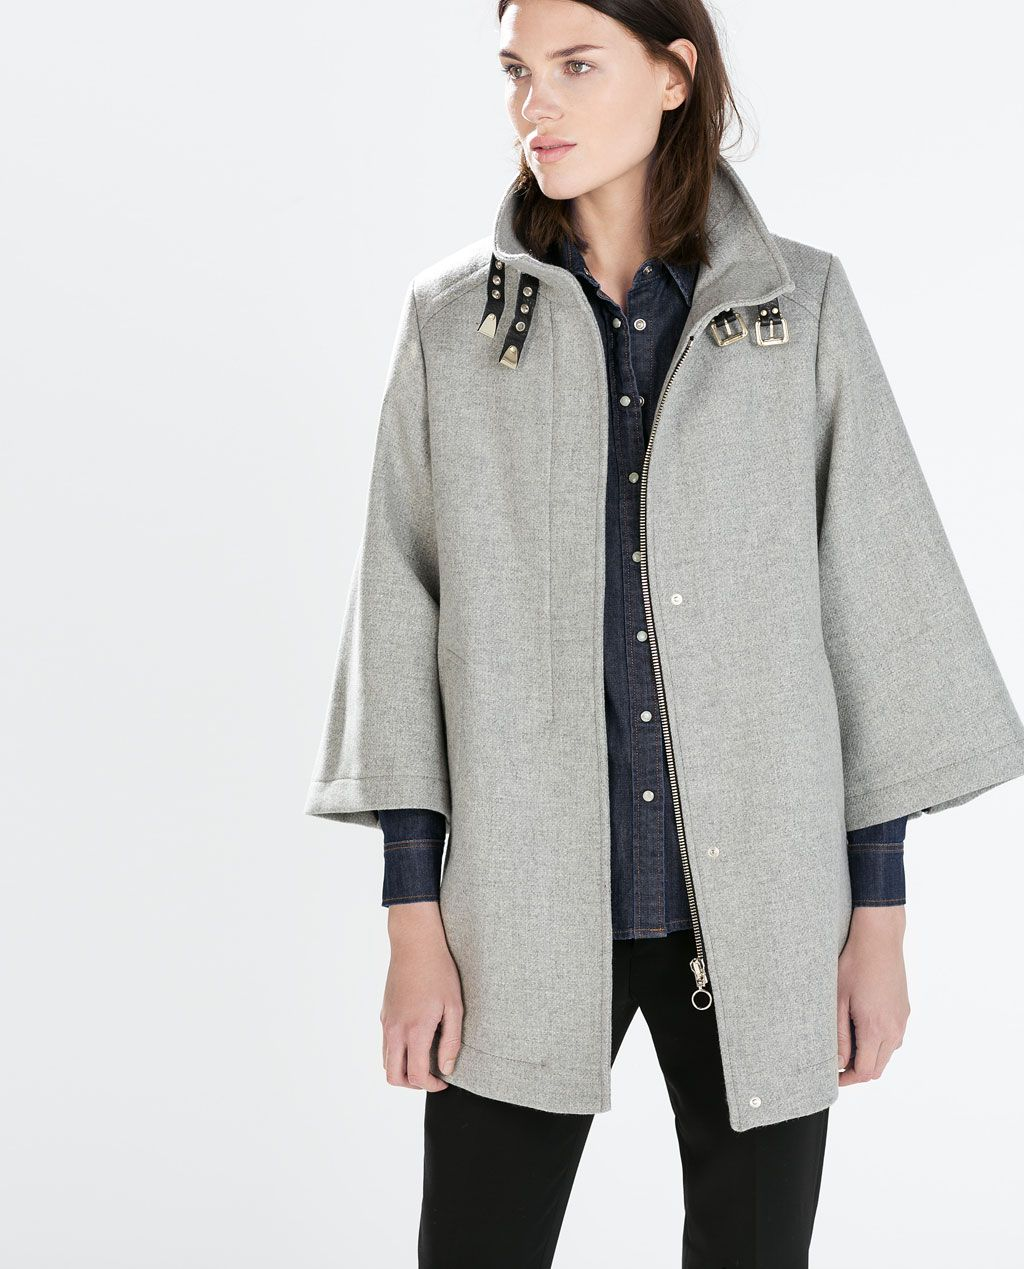 fc729f076929 15 Winter Capes That Are Way More Stylish Than Ponchos